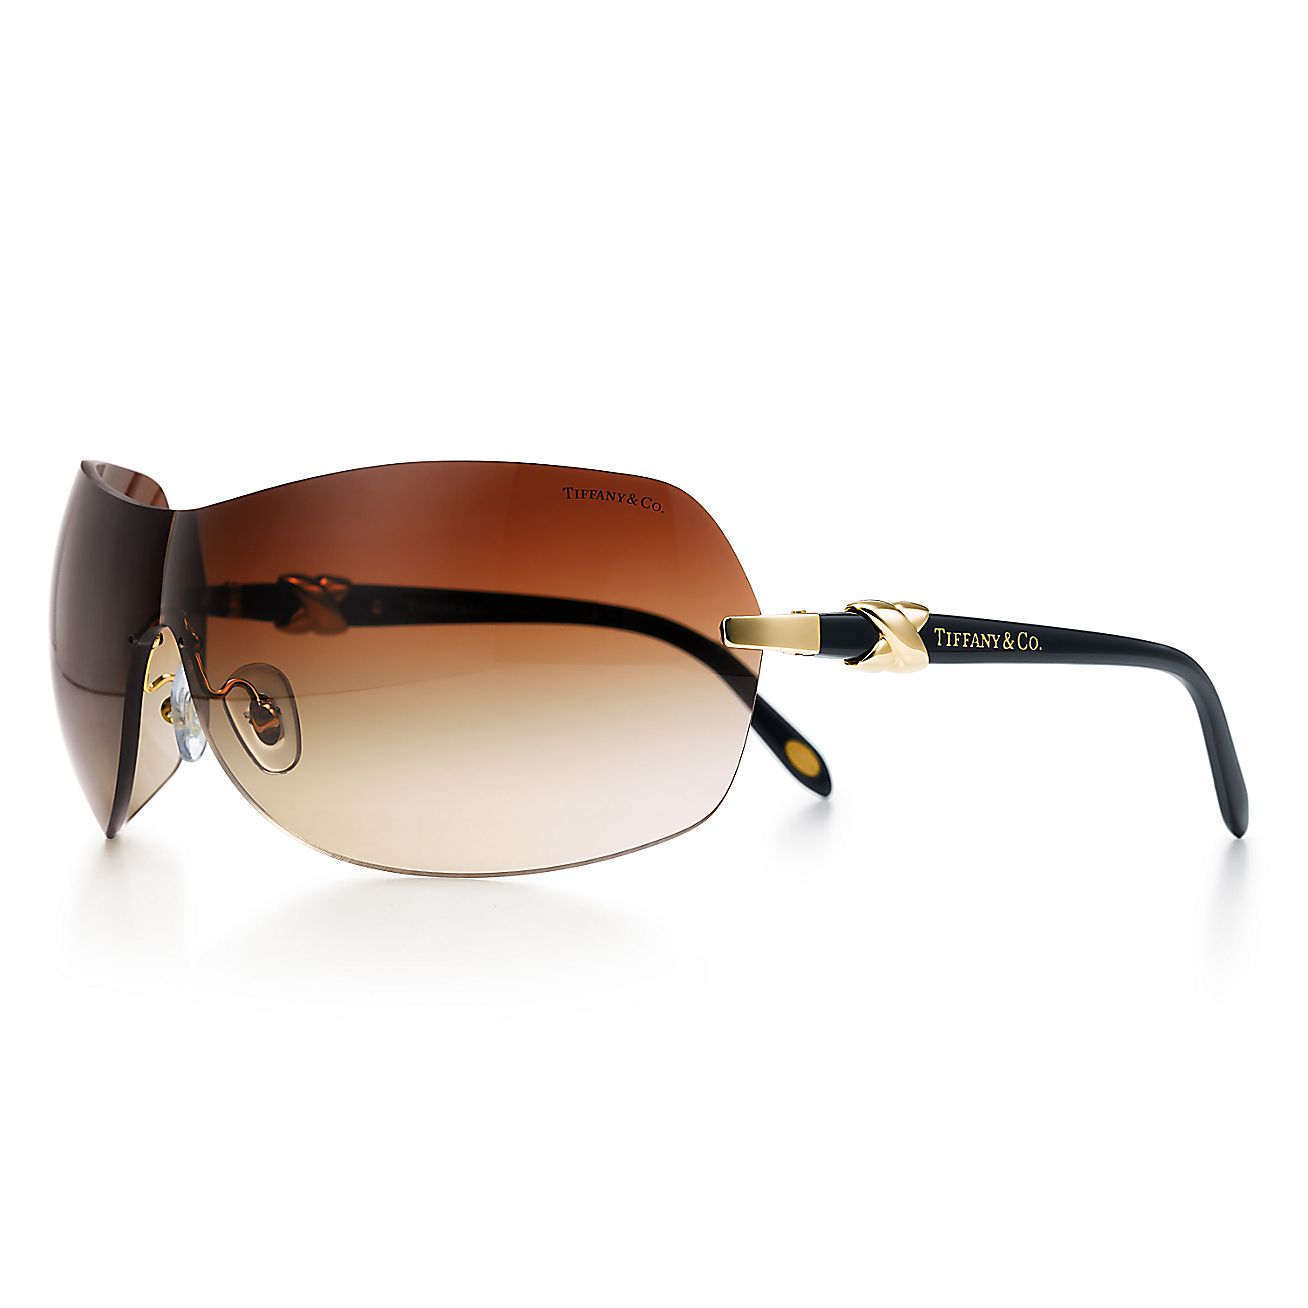 3932000f893f Tiffany Signature Butterfly Sunglasses Gold « Heritage Malta